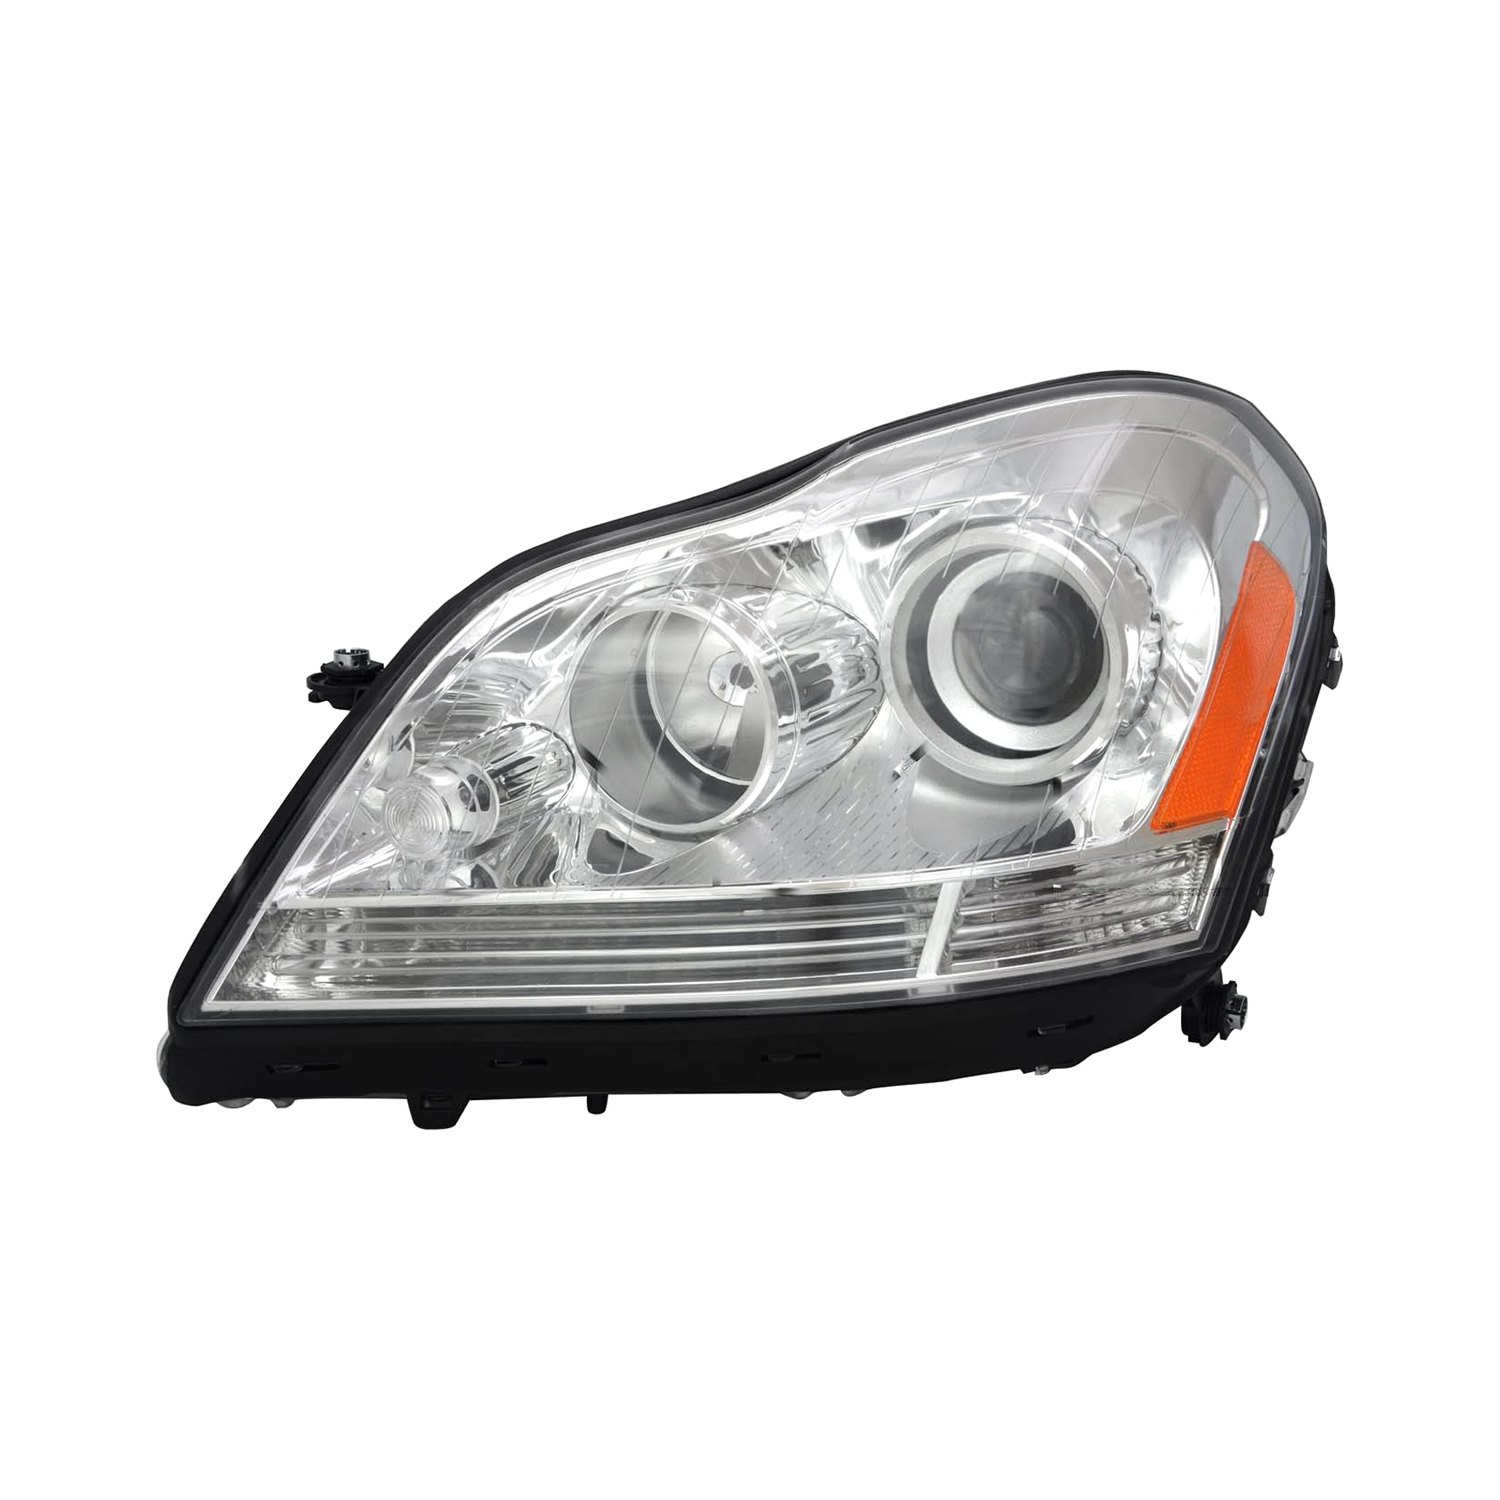 Tyc mercedes gl320 gl450 gl500 gl550 with factory for Mercedes benz aftermarket headlights